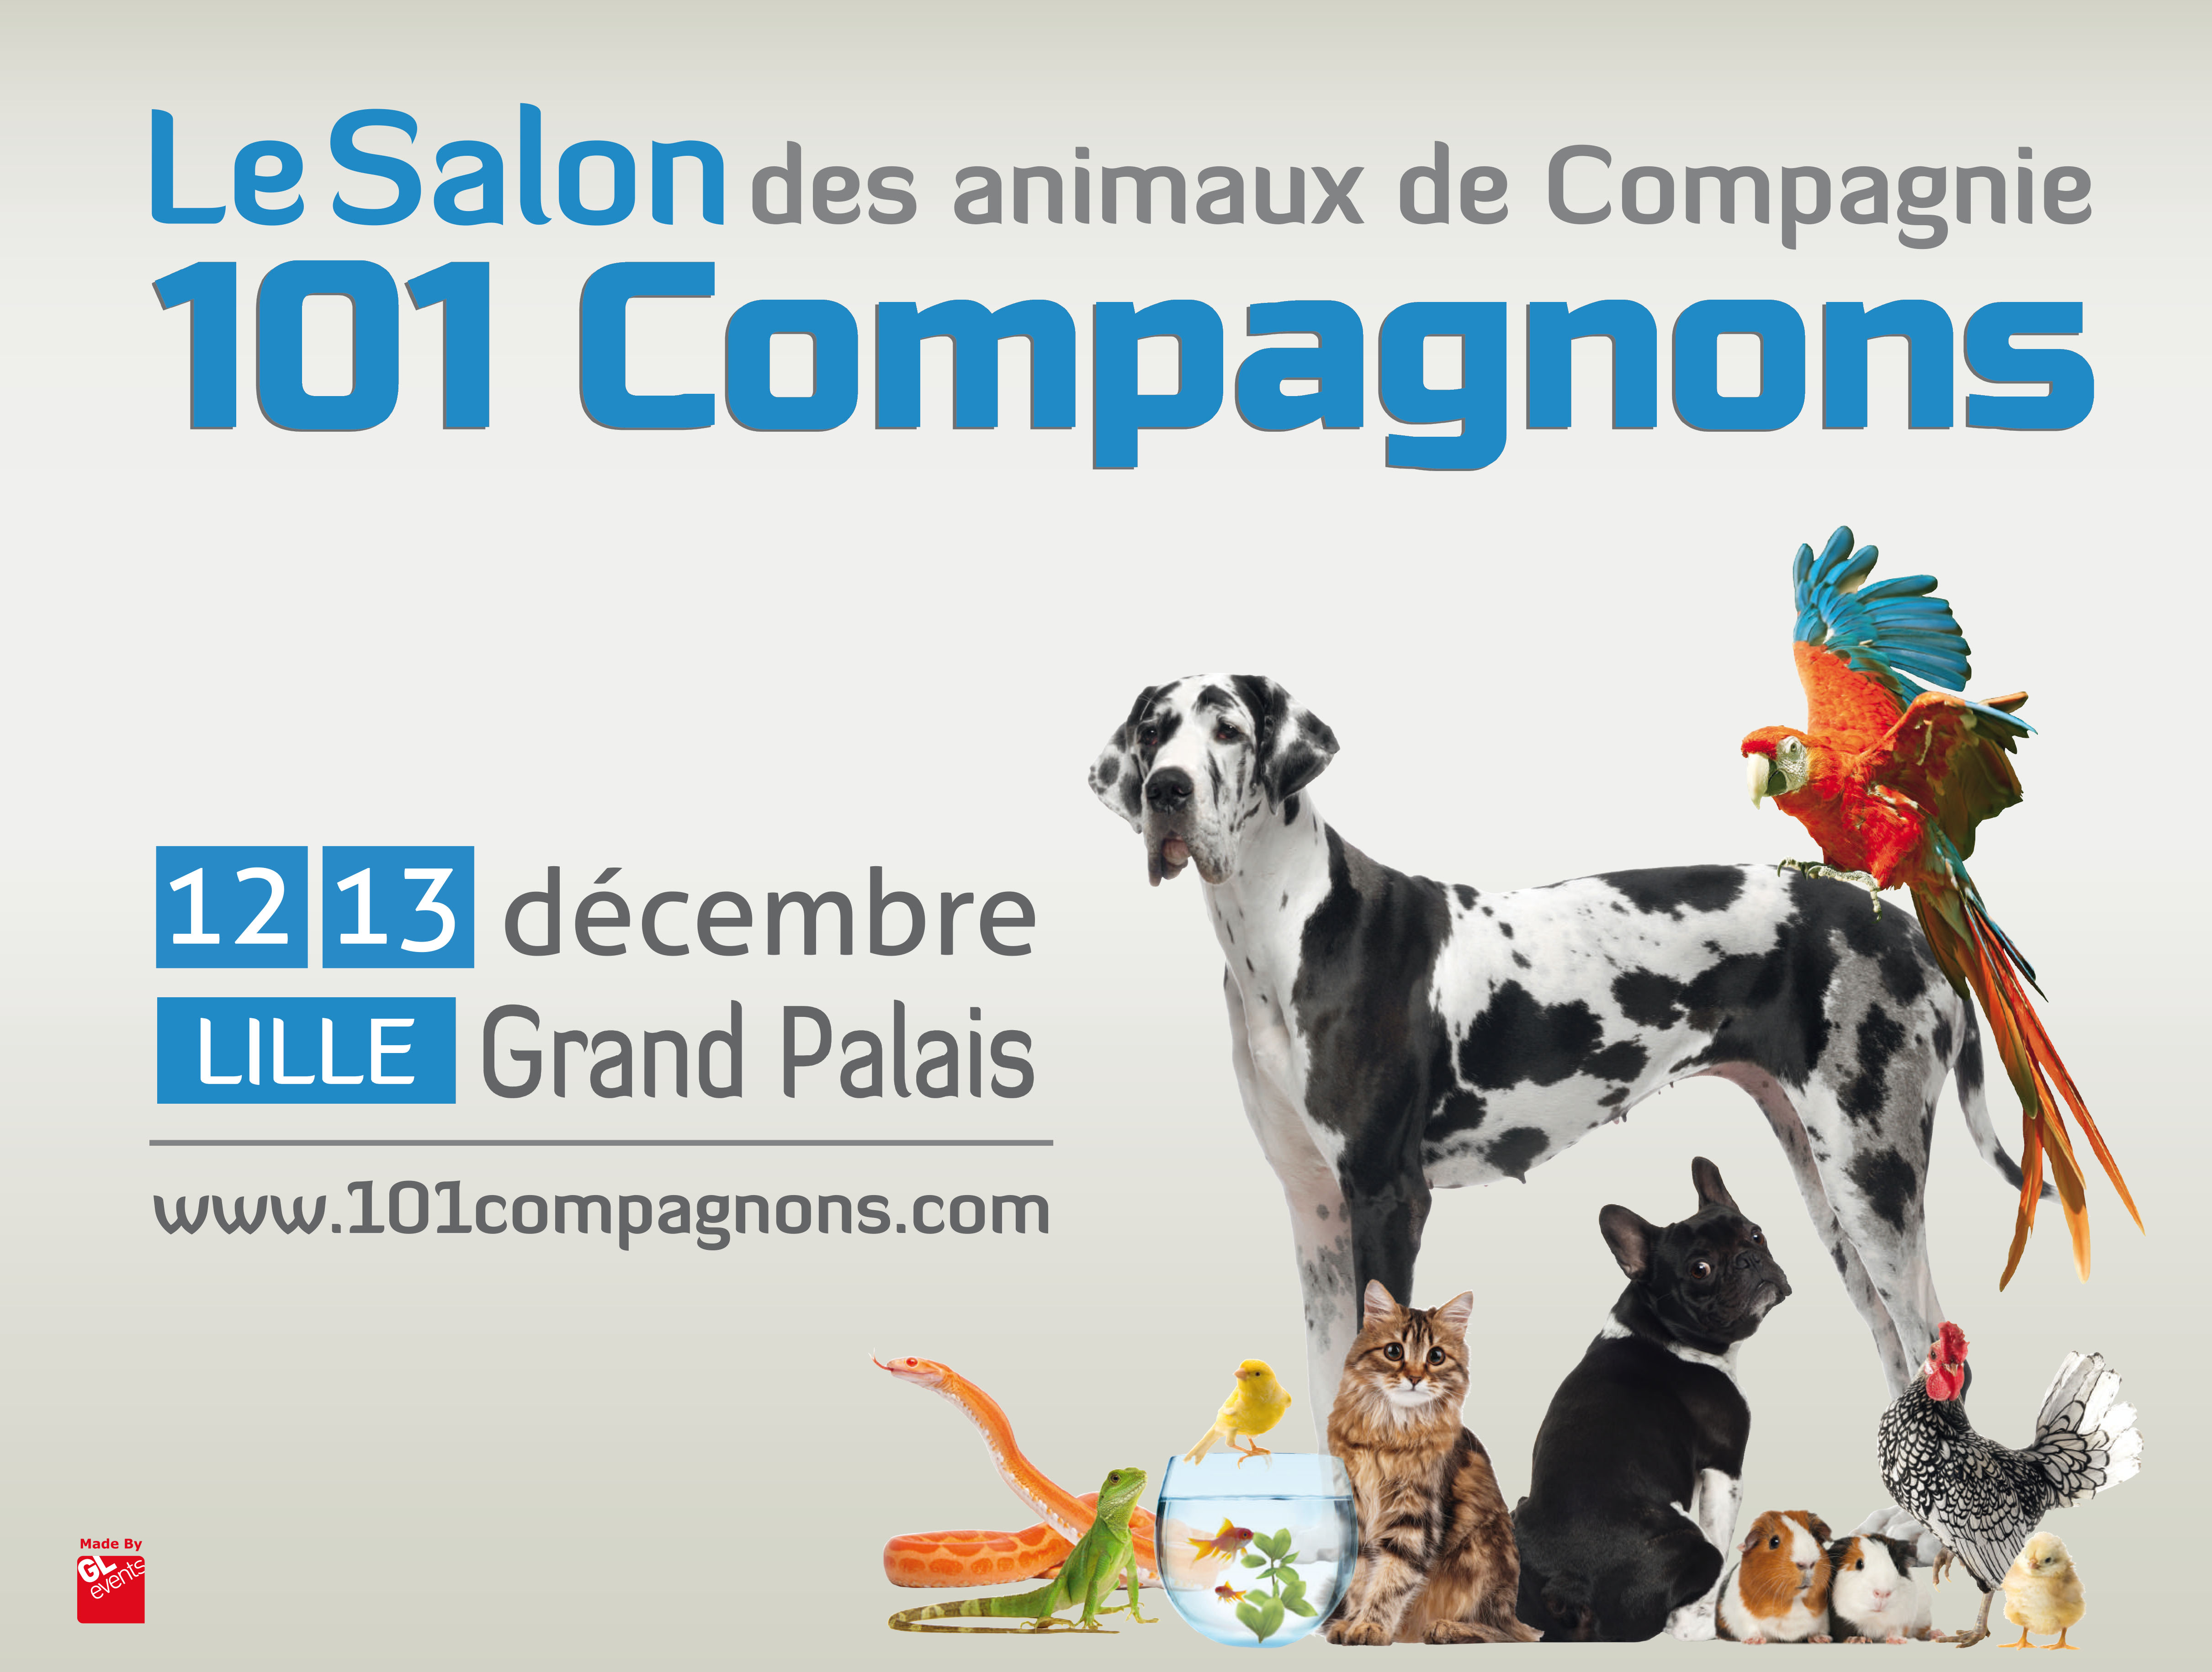 101 compagnons lille grand palais lille grand palais for Salon de l habitat lille grand palais